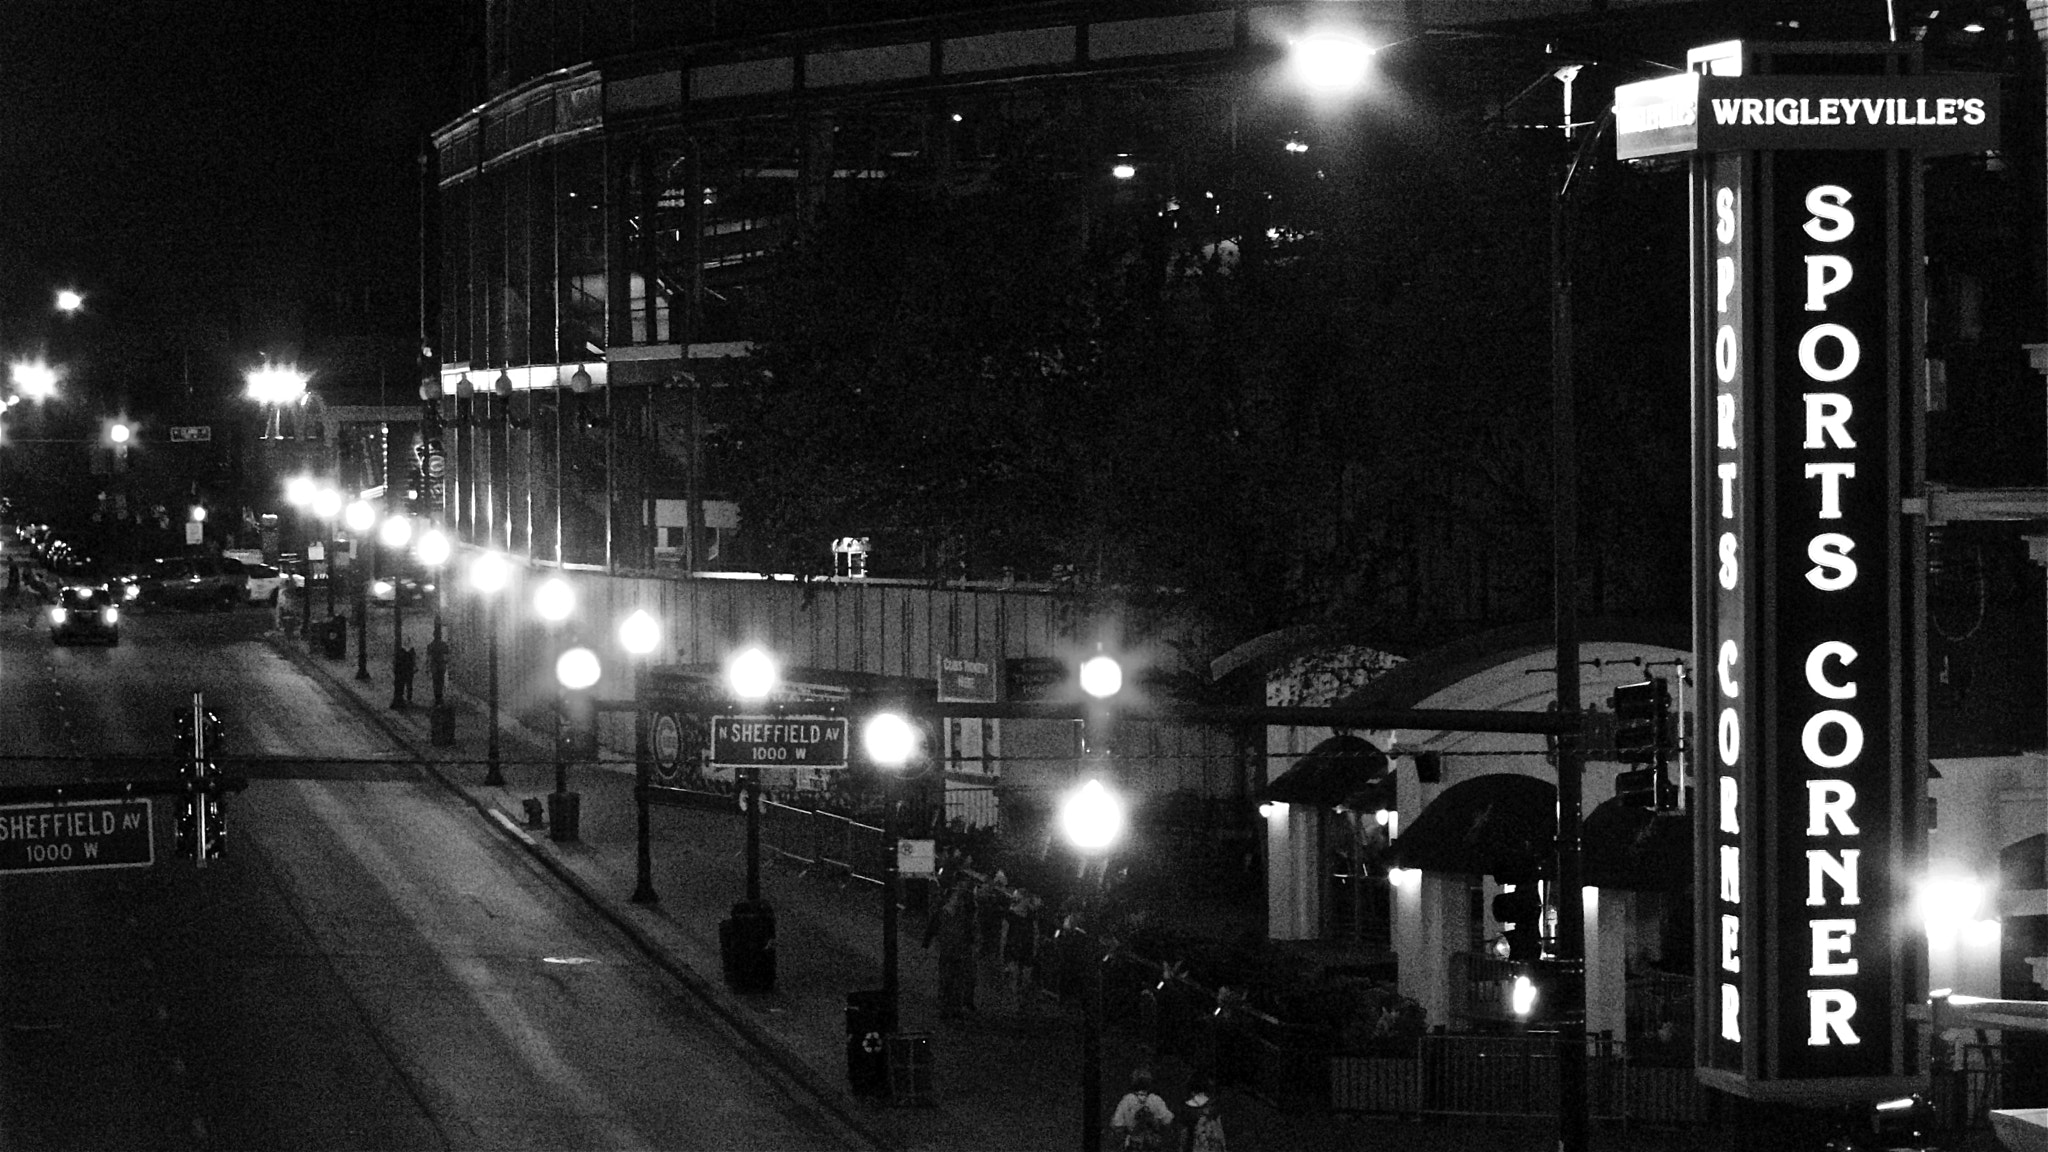 Photograph Quiet Night In Wrigleyville by Dan Marder on 500px